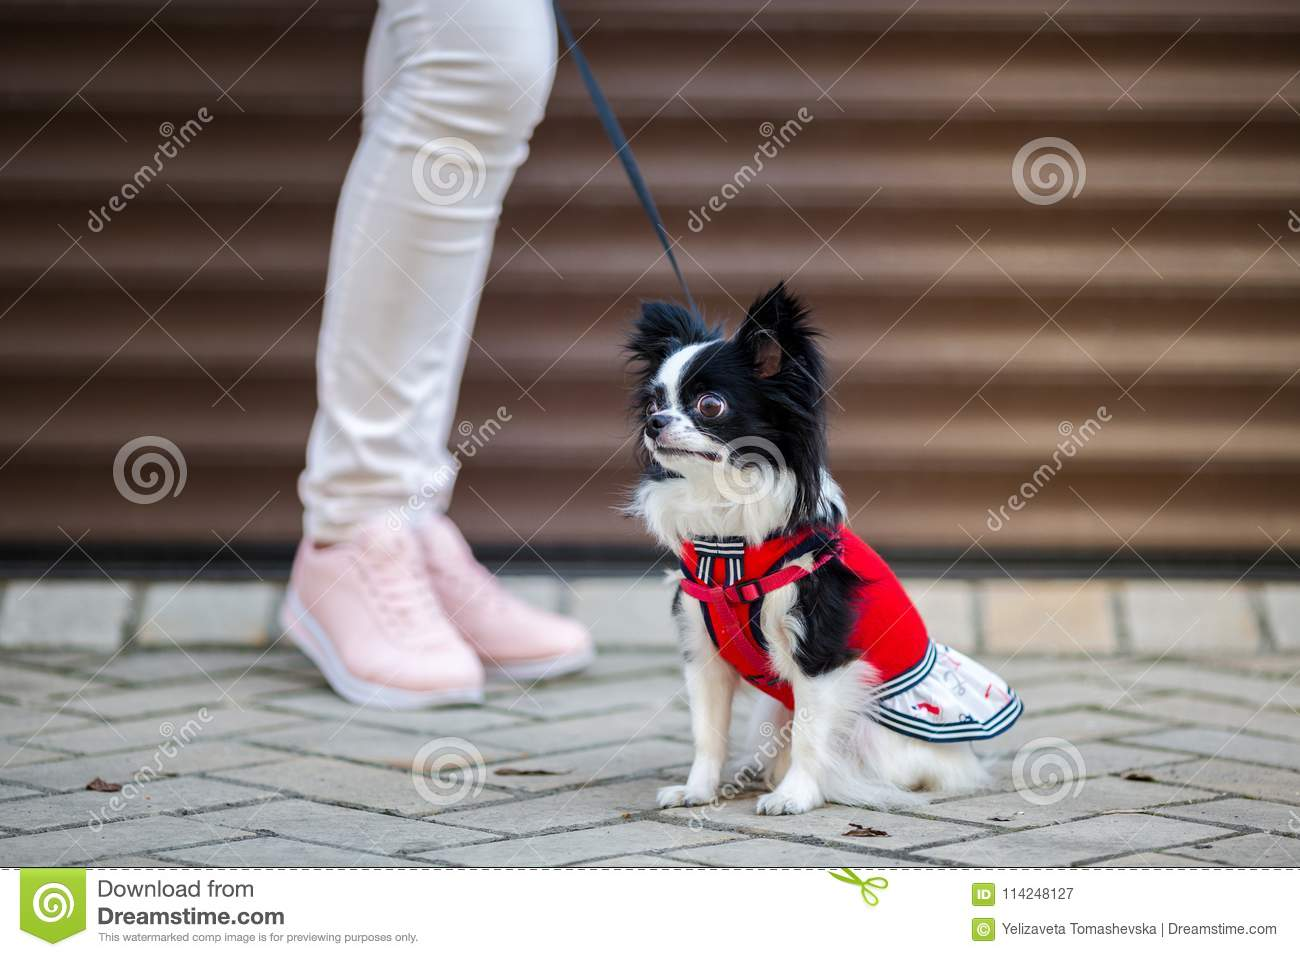 A black fluffy white, long-haired funny dog with emale sex with larger eyes the Chihuahua breed, dressed in red knitted dress. The